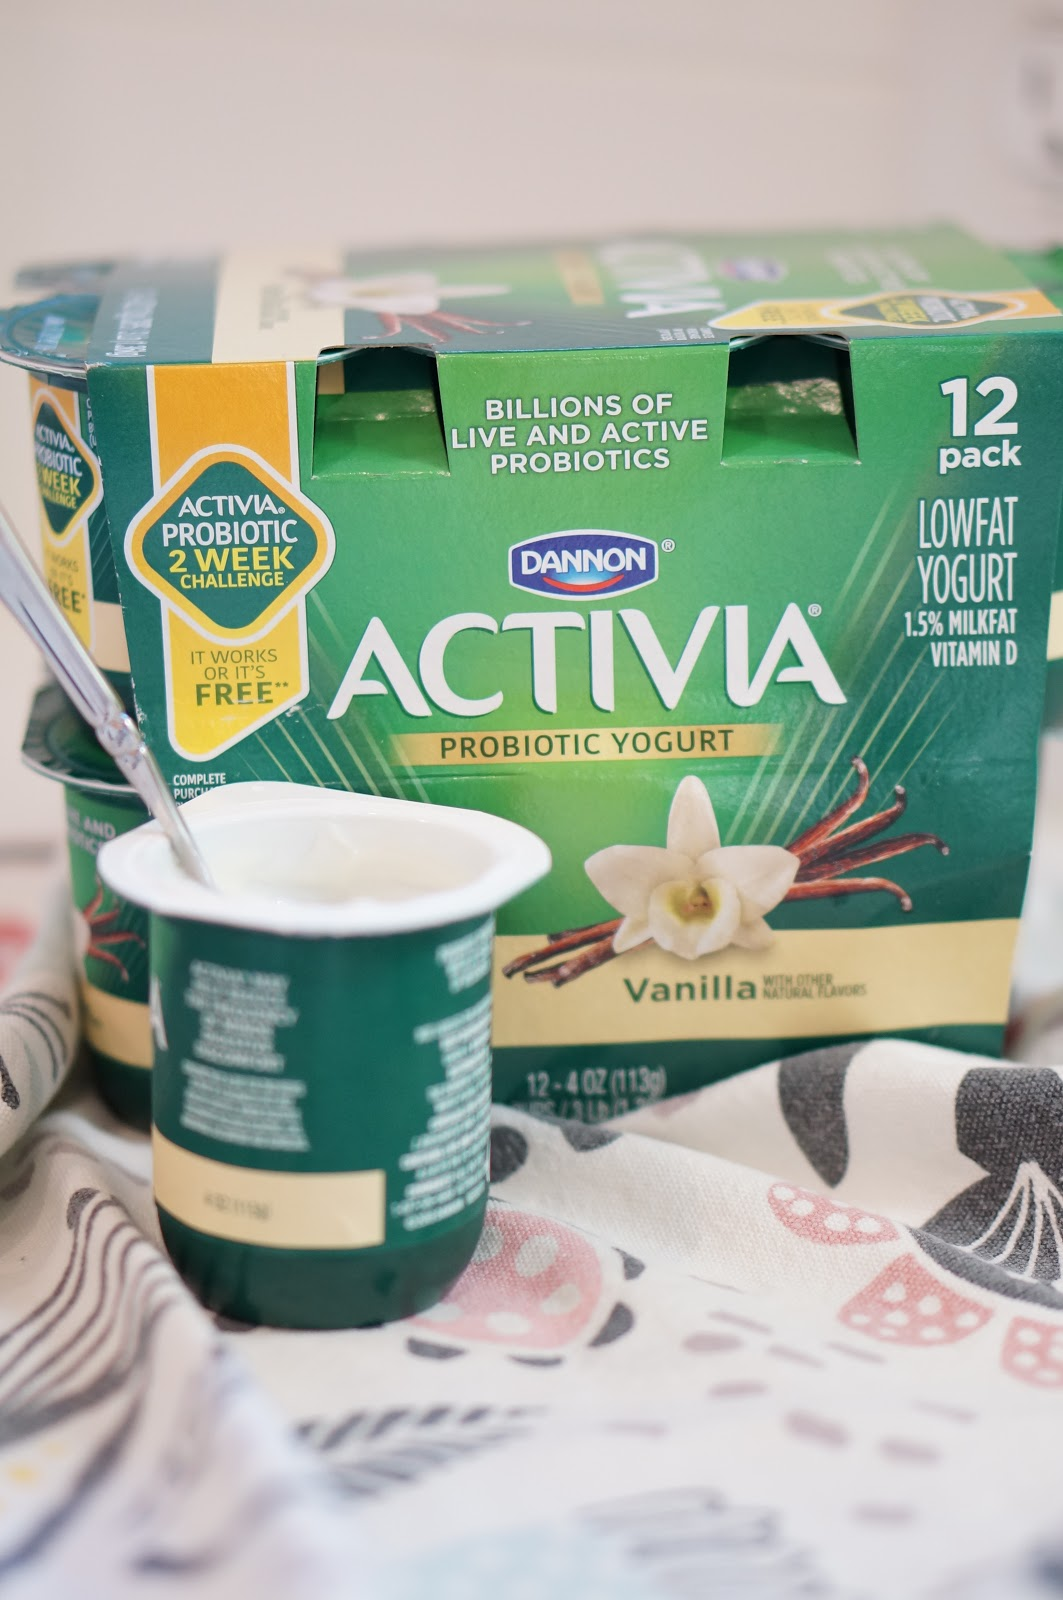 Popular North Carolina style blogger Rebecca Lately shares her 2 week Activia challenge. Click here to read how she made a healthy switch in her routine!